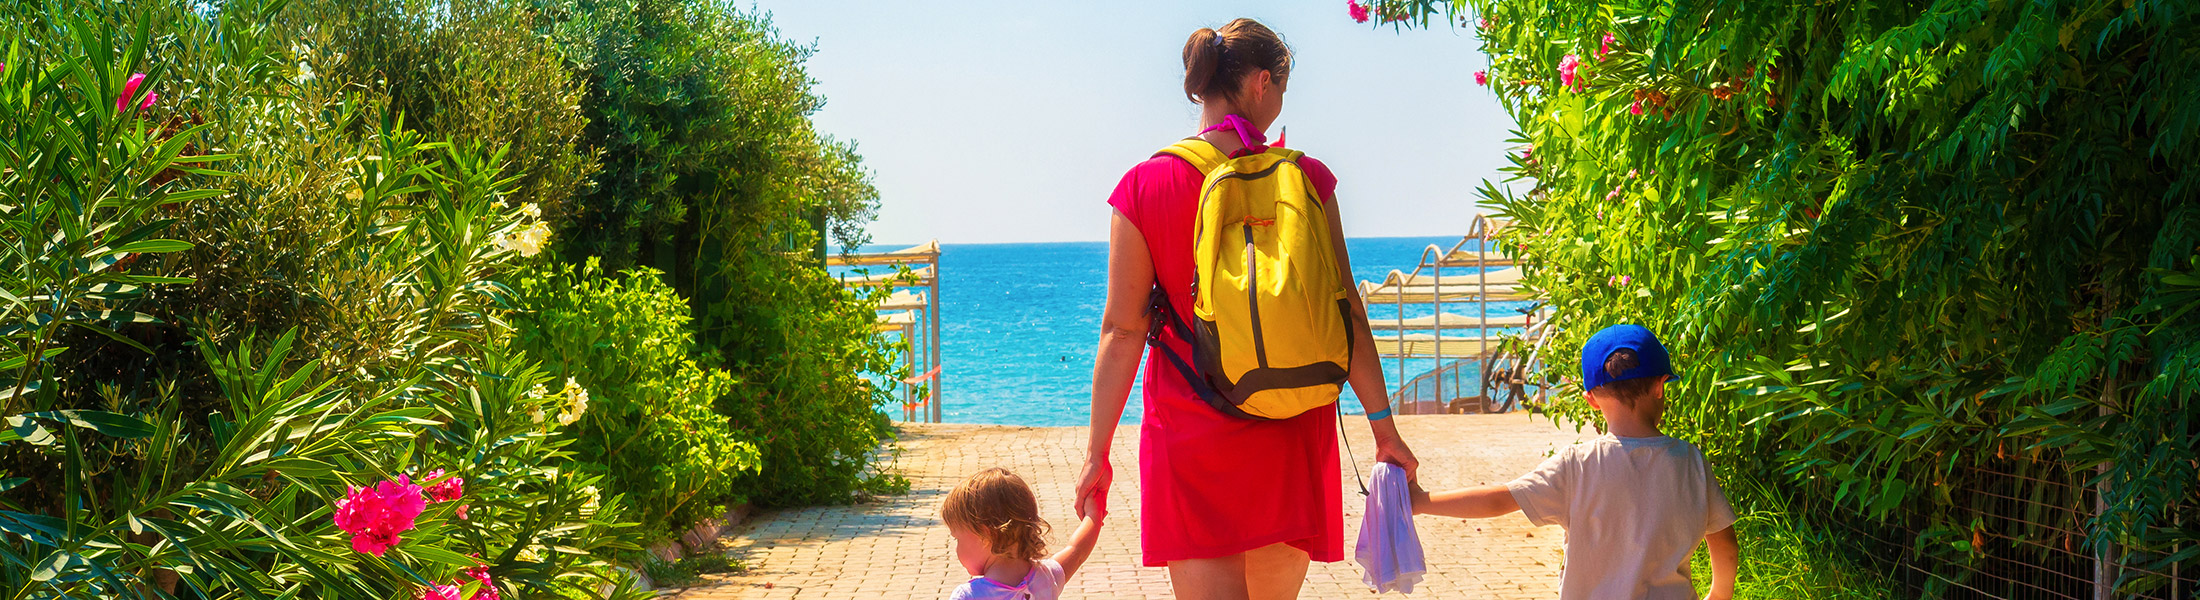 Mother and two children walking to the beach at Costa del Sol in Spain Europe